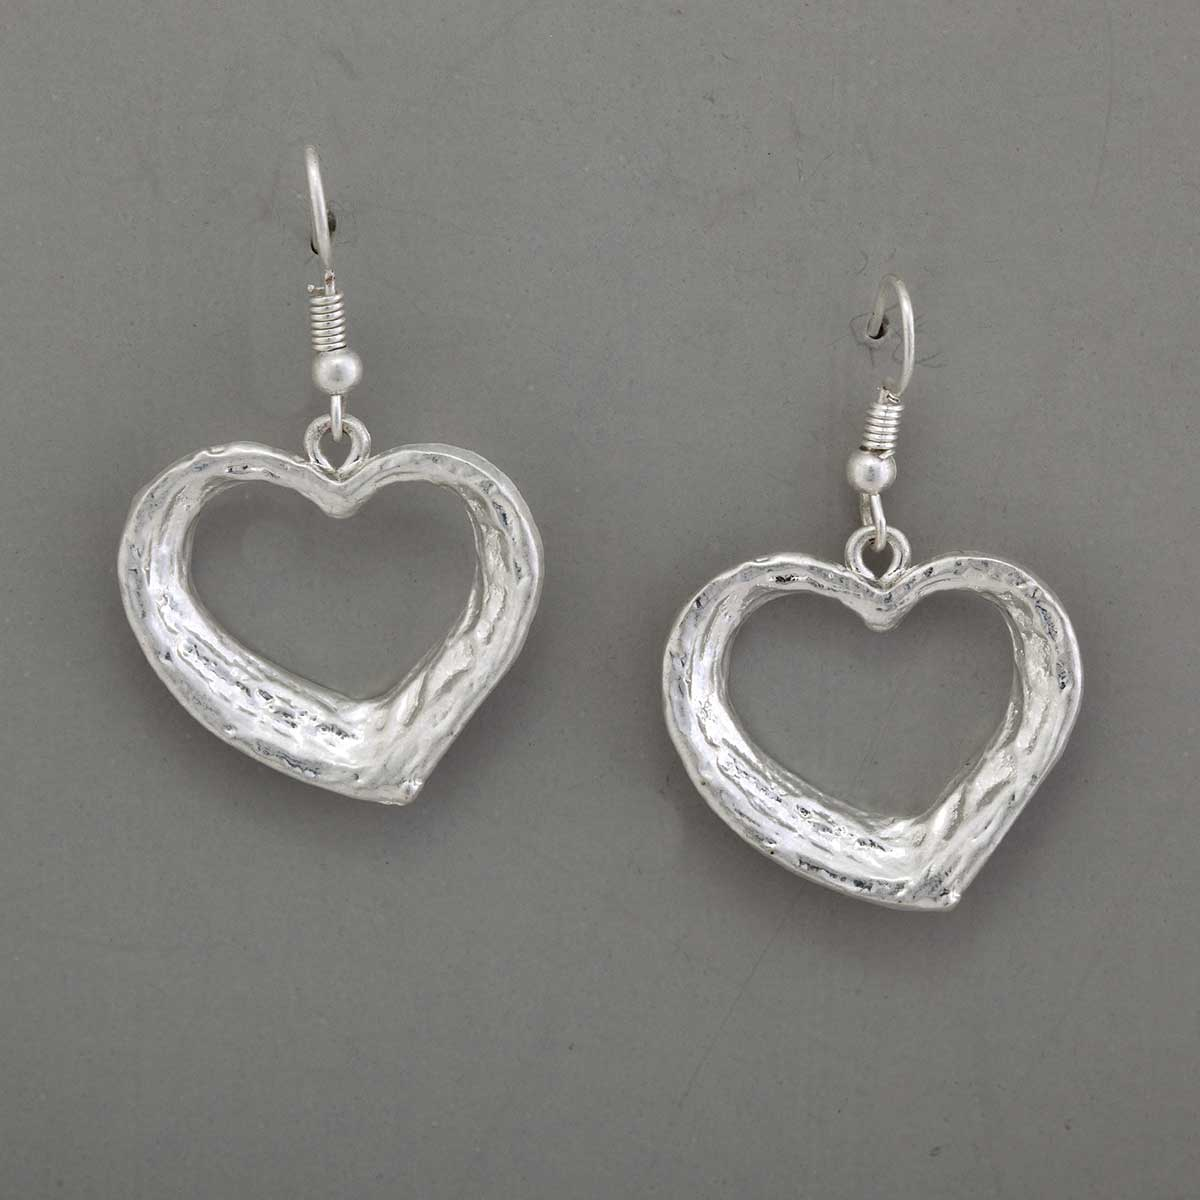 HEART EARRING HAMMERED SILVER